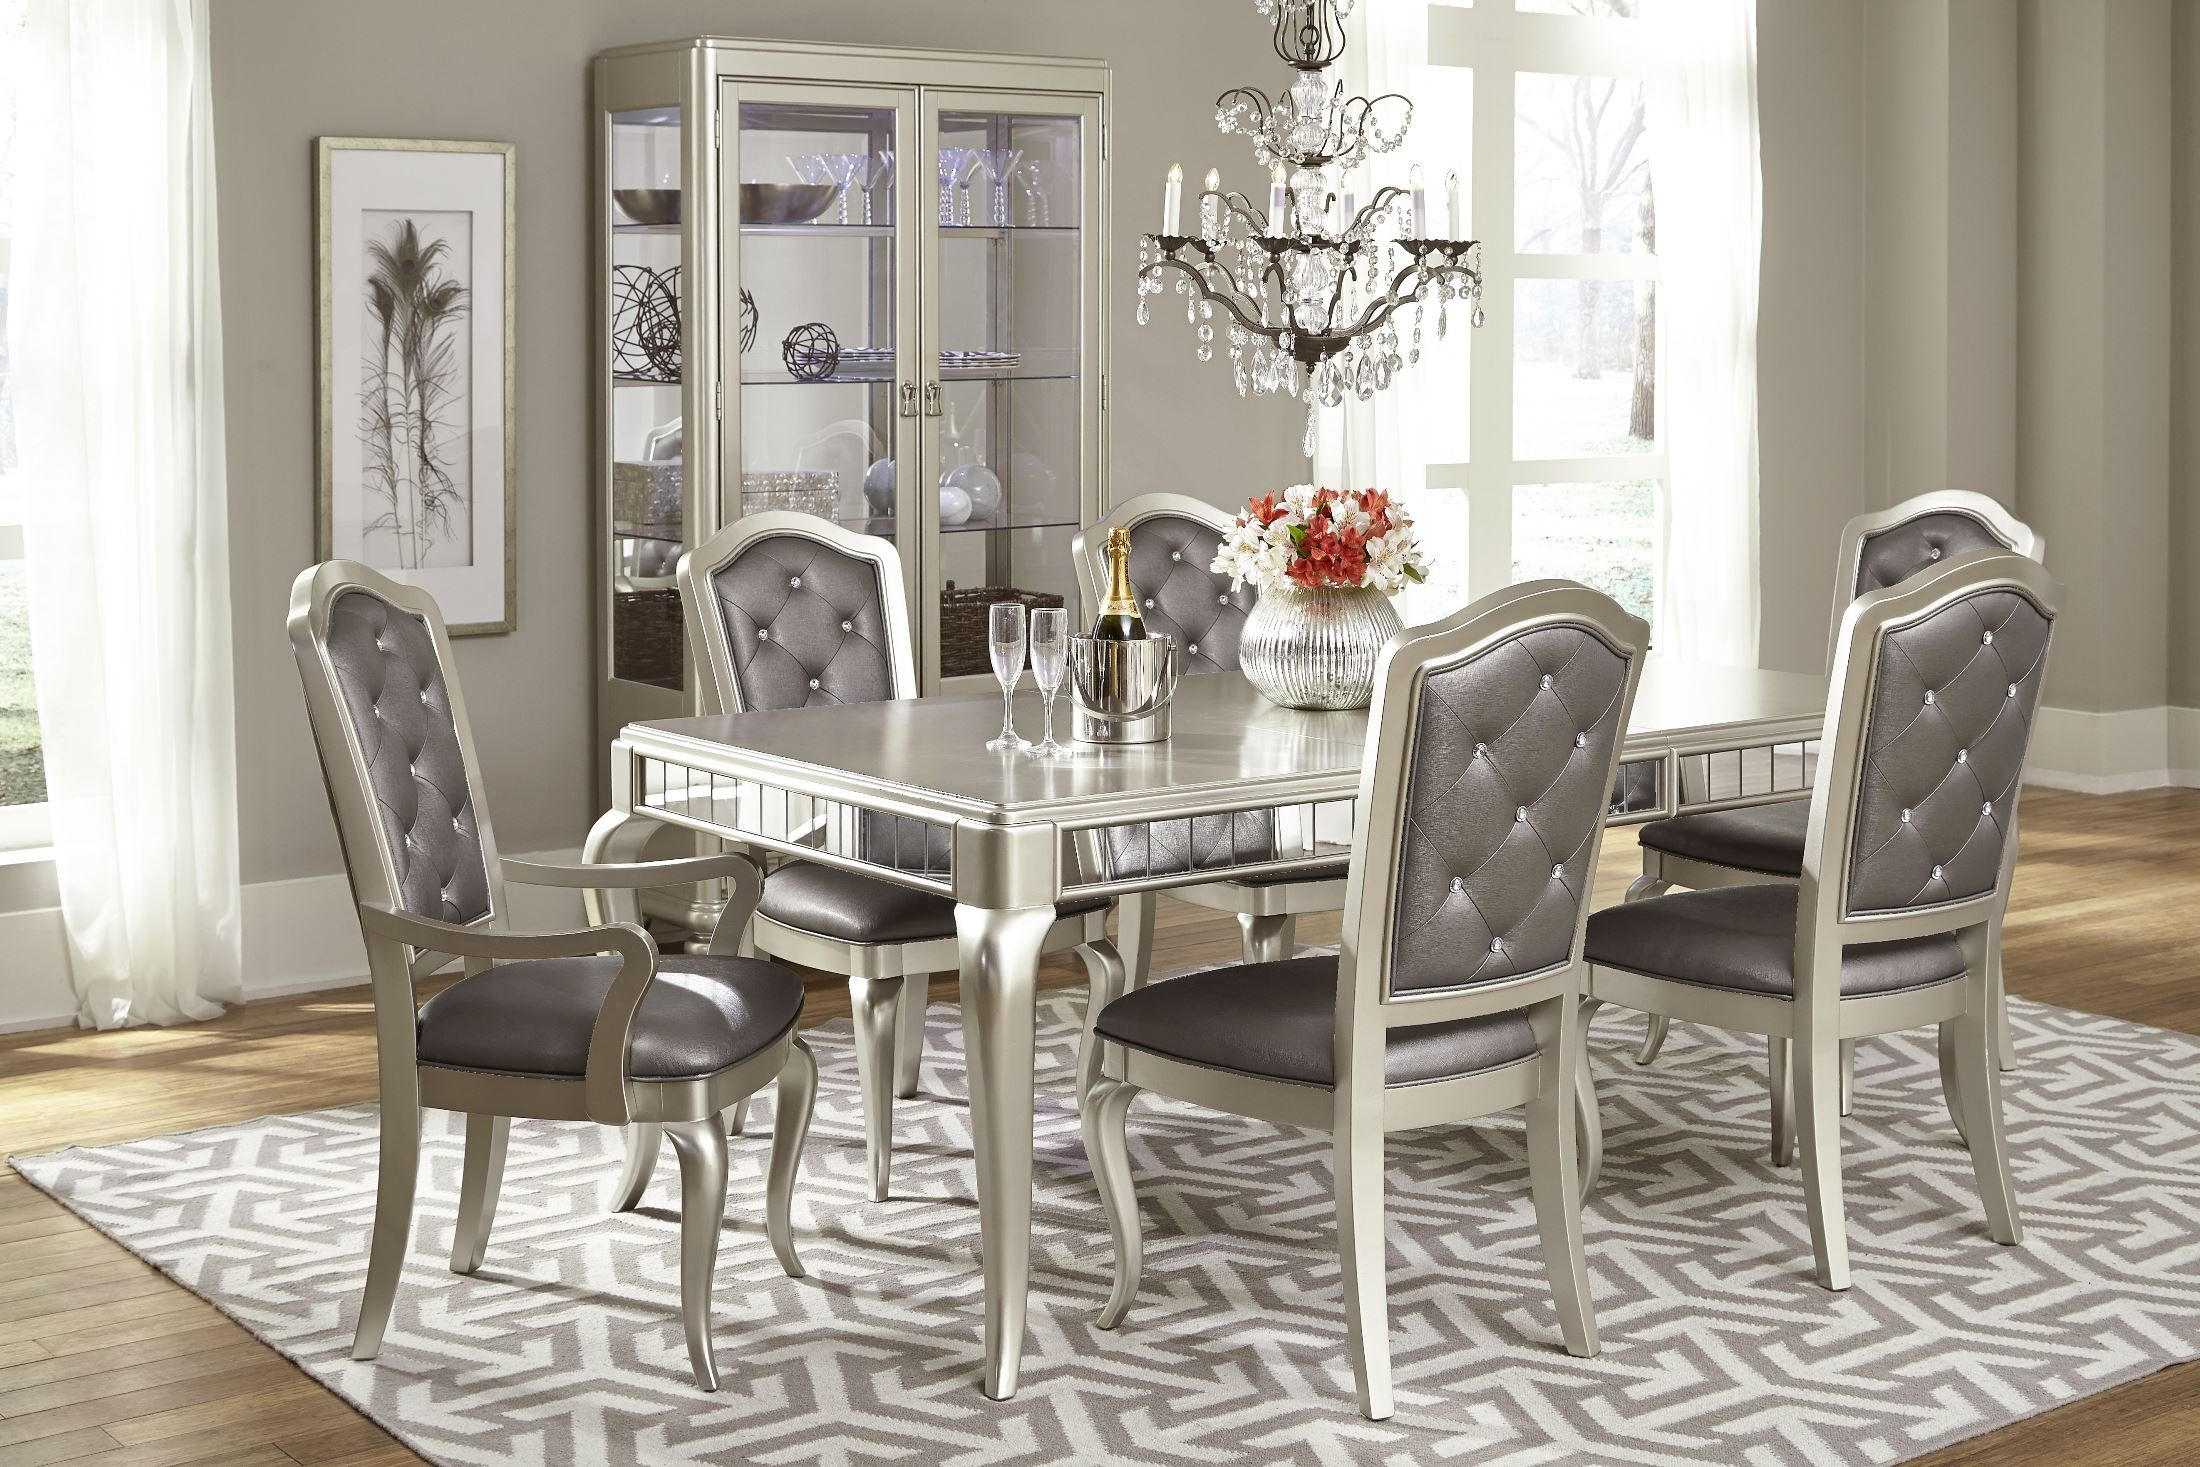 Diva Rectangular Extendable Leg Dining Room Set From Samuel Lawrence 8808 13